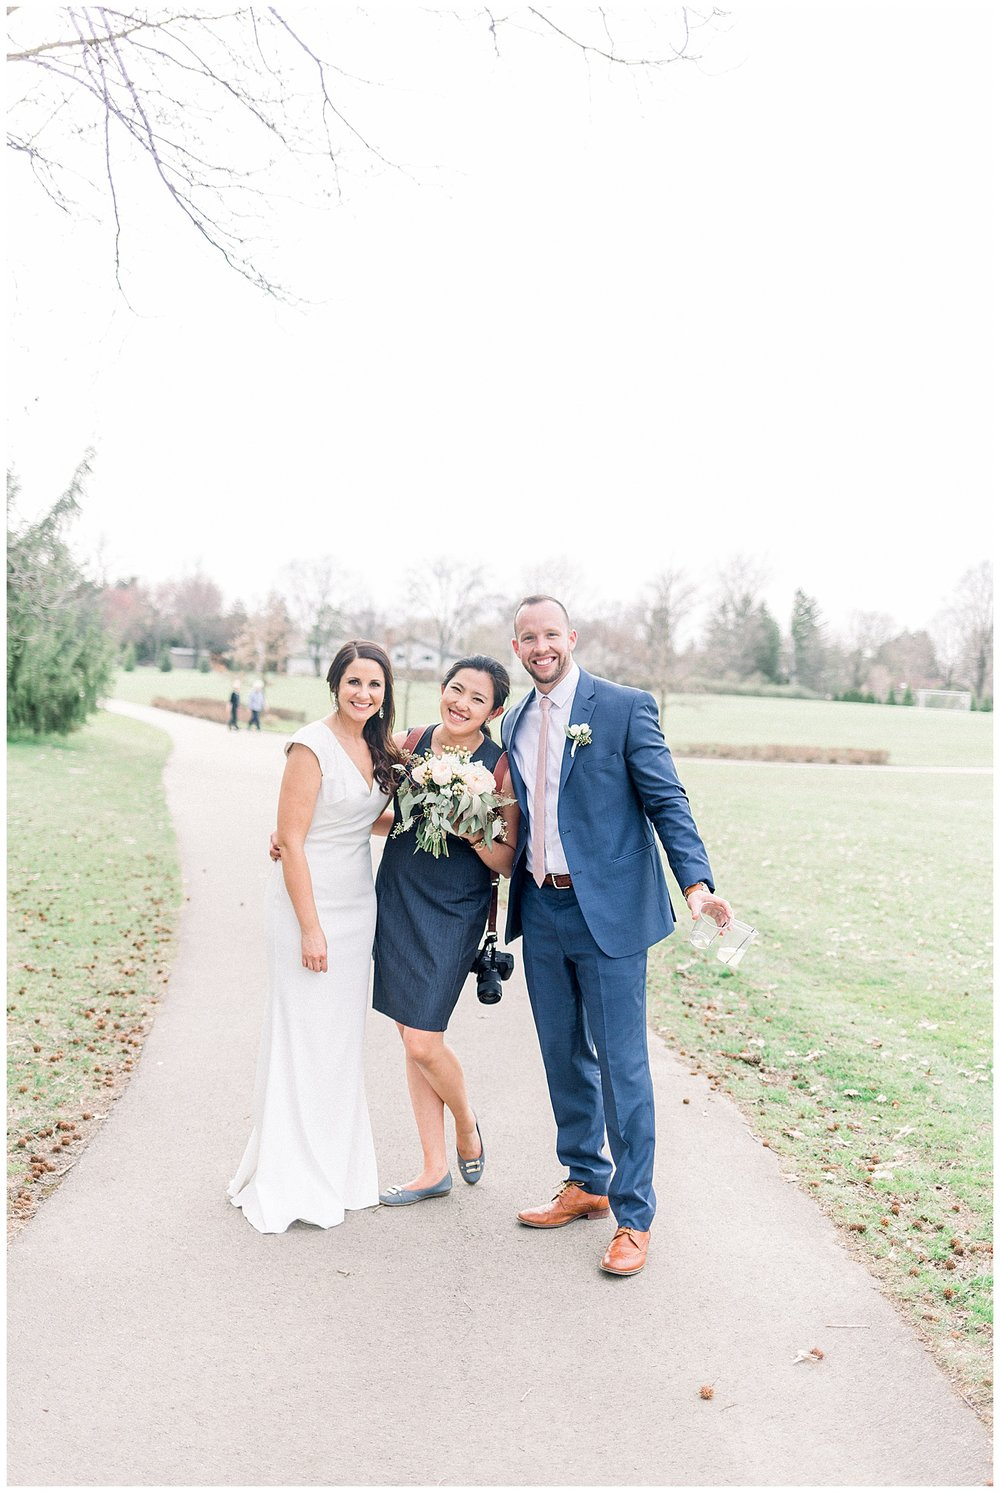 christine kim owner of ji cherir photography cincinnati, oh wedding photographer specializing in film and digital fine art wedding photographer